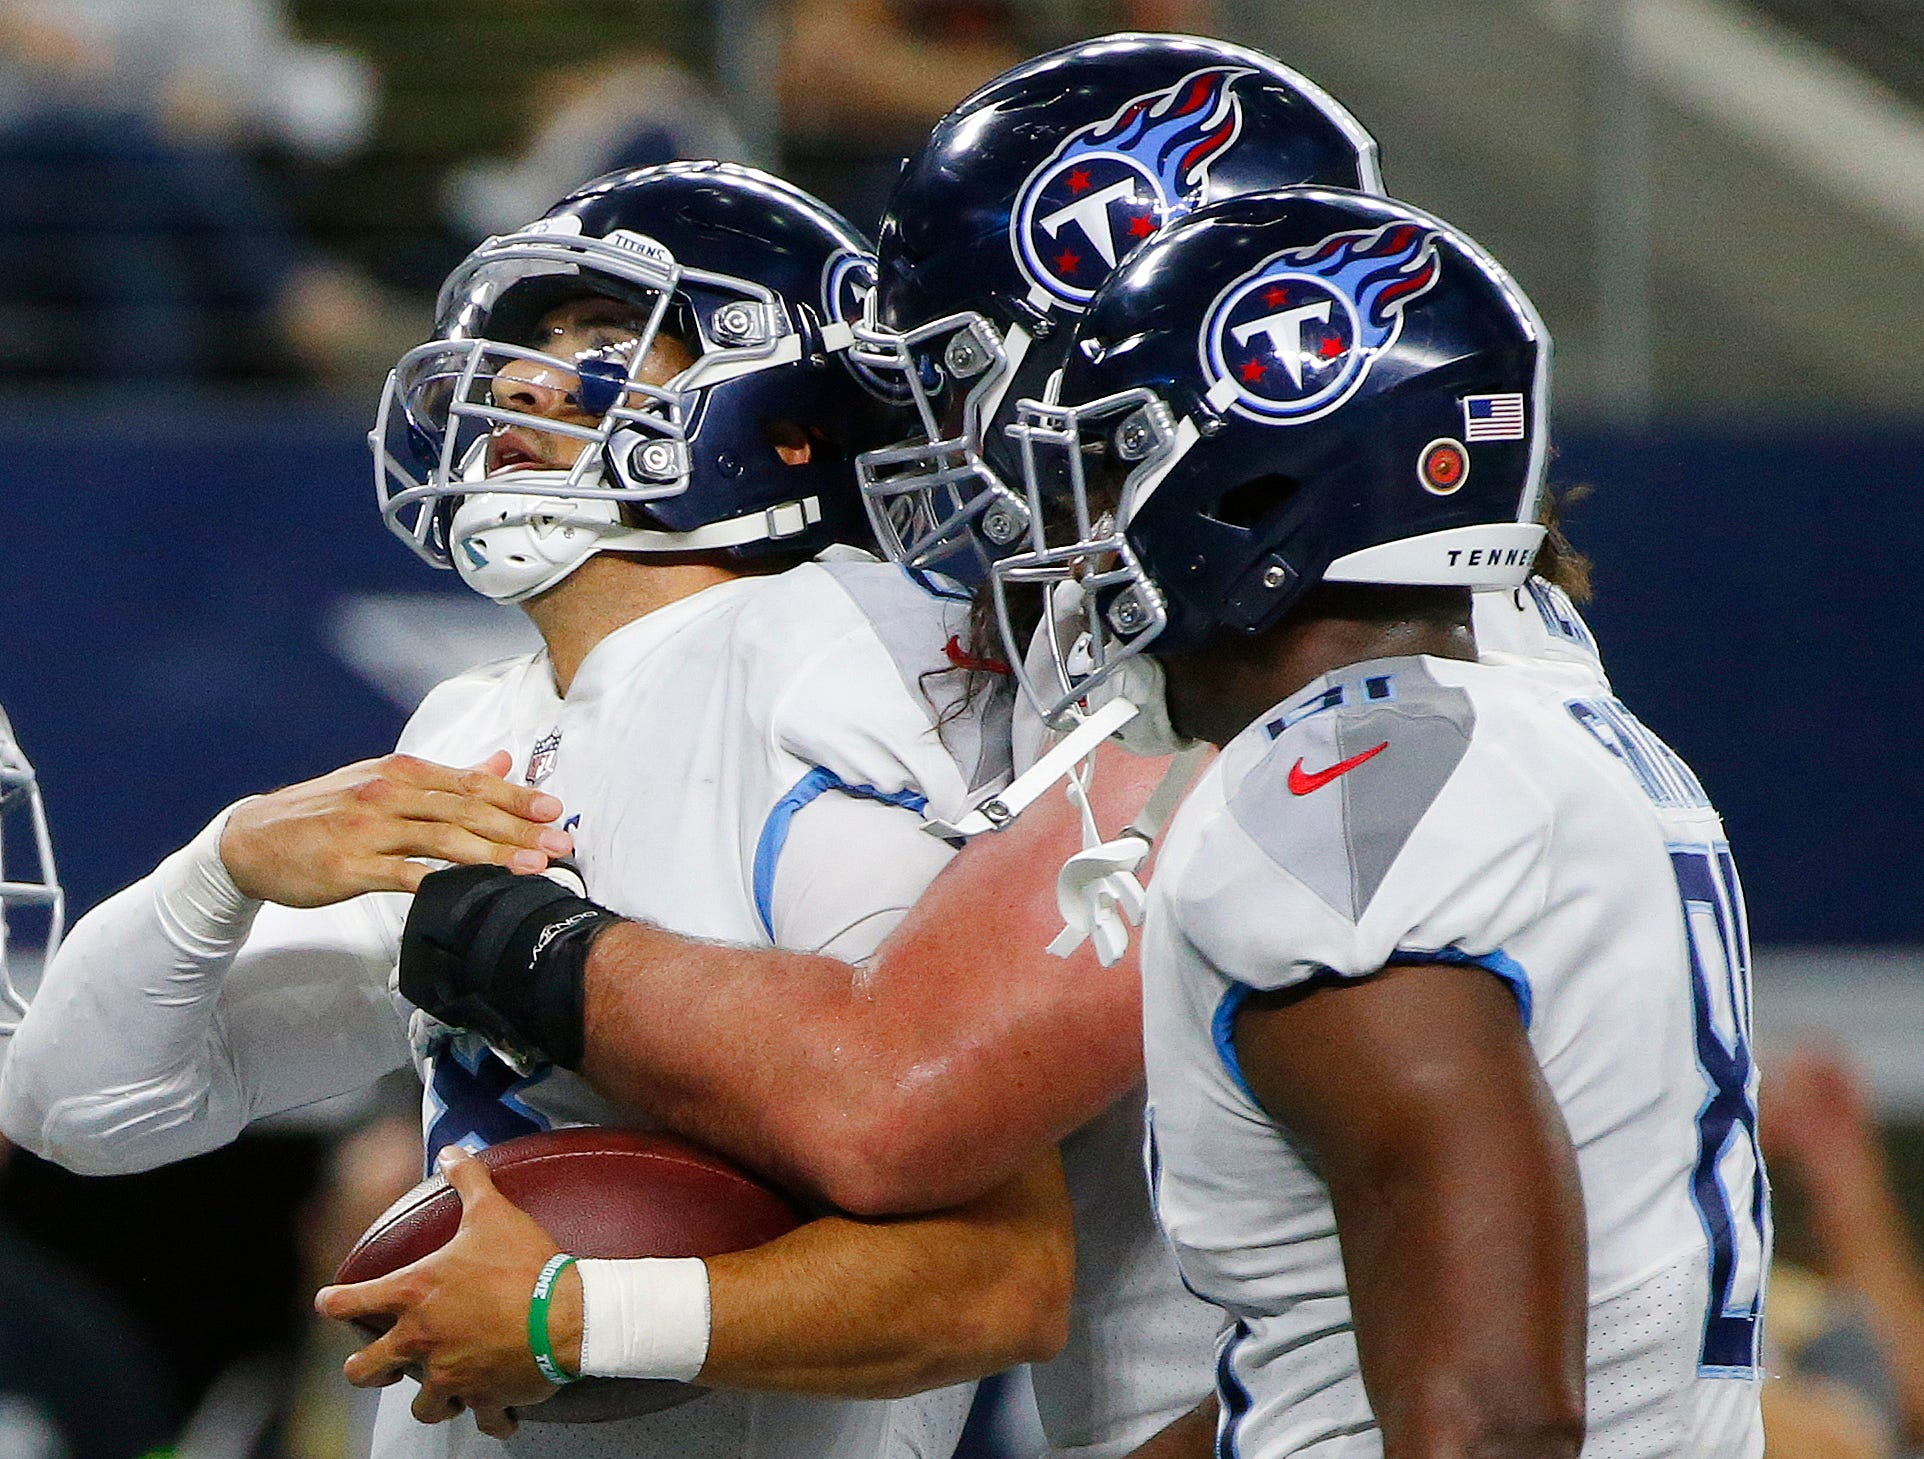 Tennessee Titans quarterback Marcus Mariota, left, celebrates his touchdown run with team mates during the second half of an NFL football game against the Dallas Cowboys, Monday, Nov. 5, 2018, in Arlington, Texas.